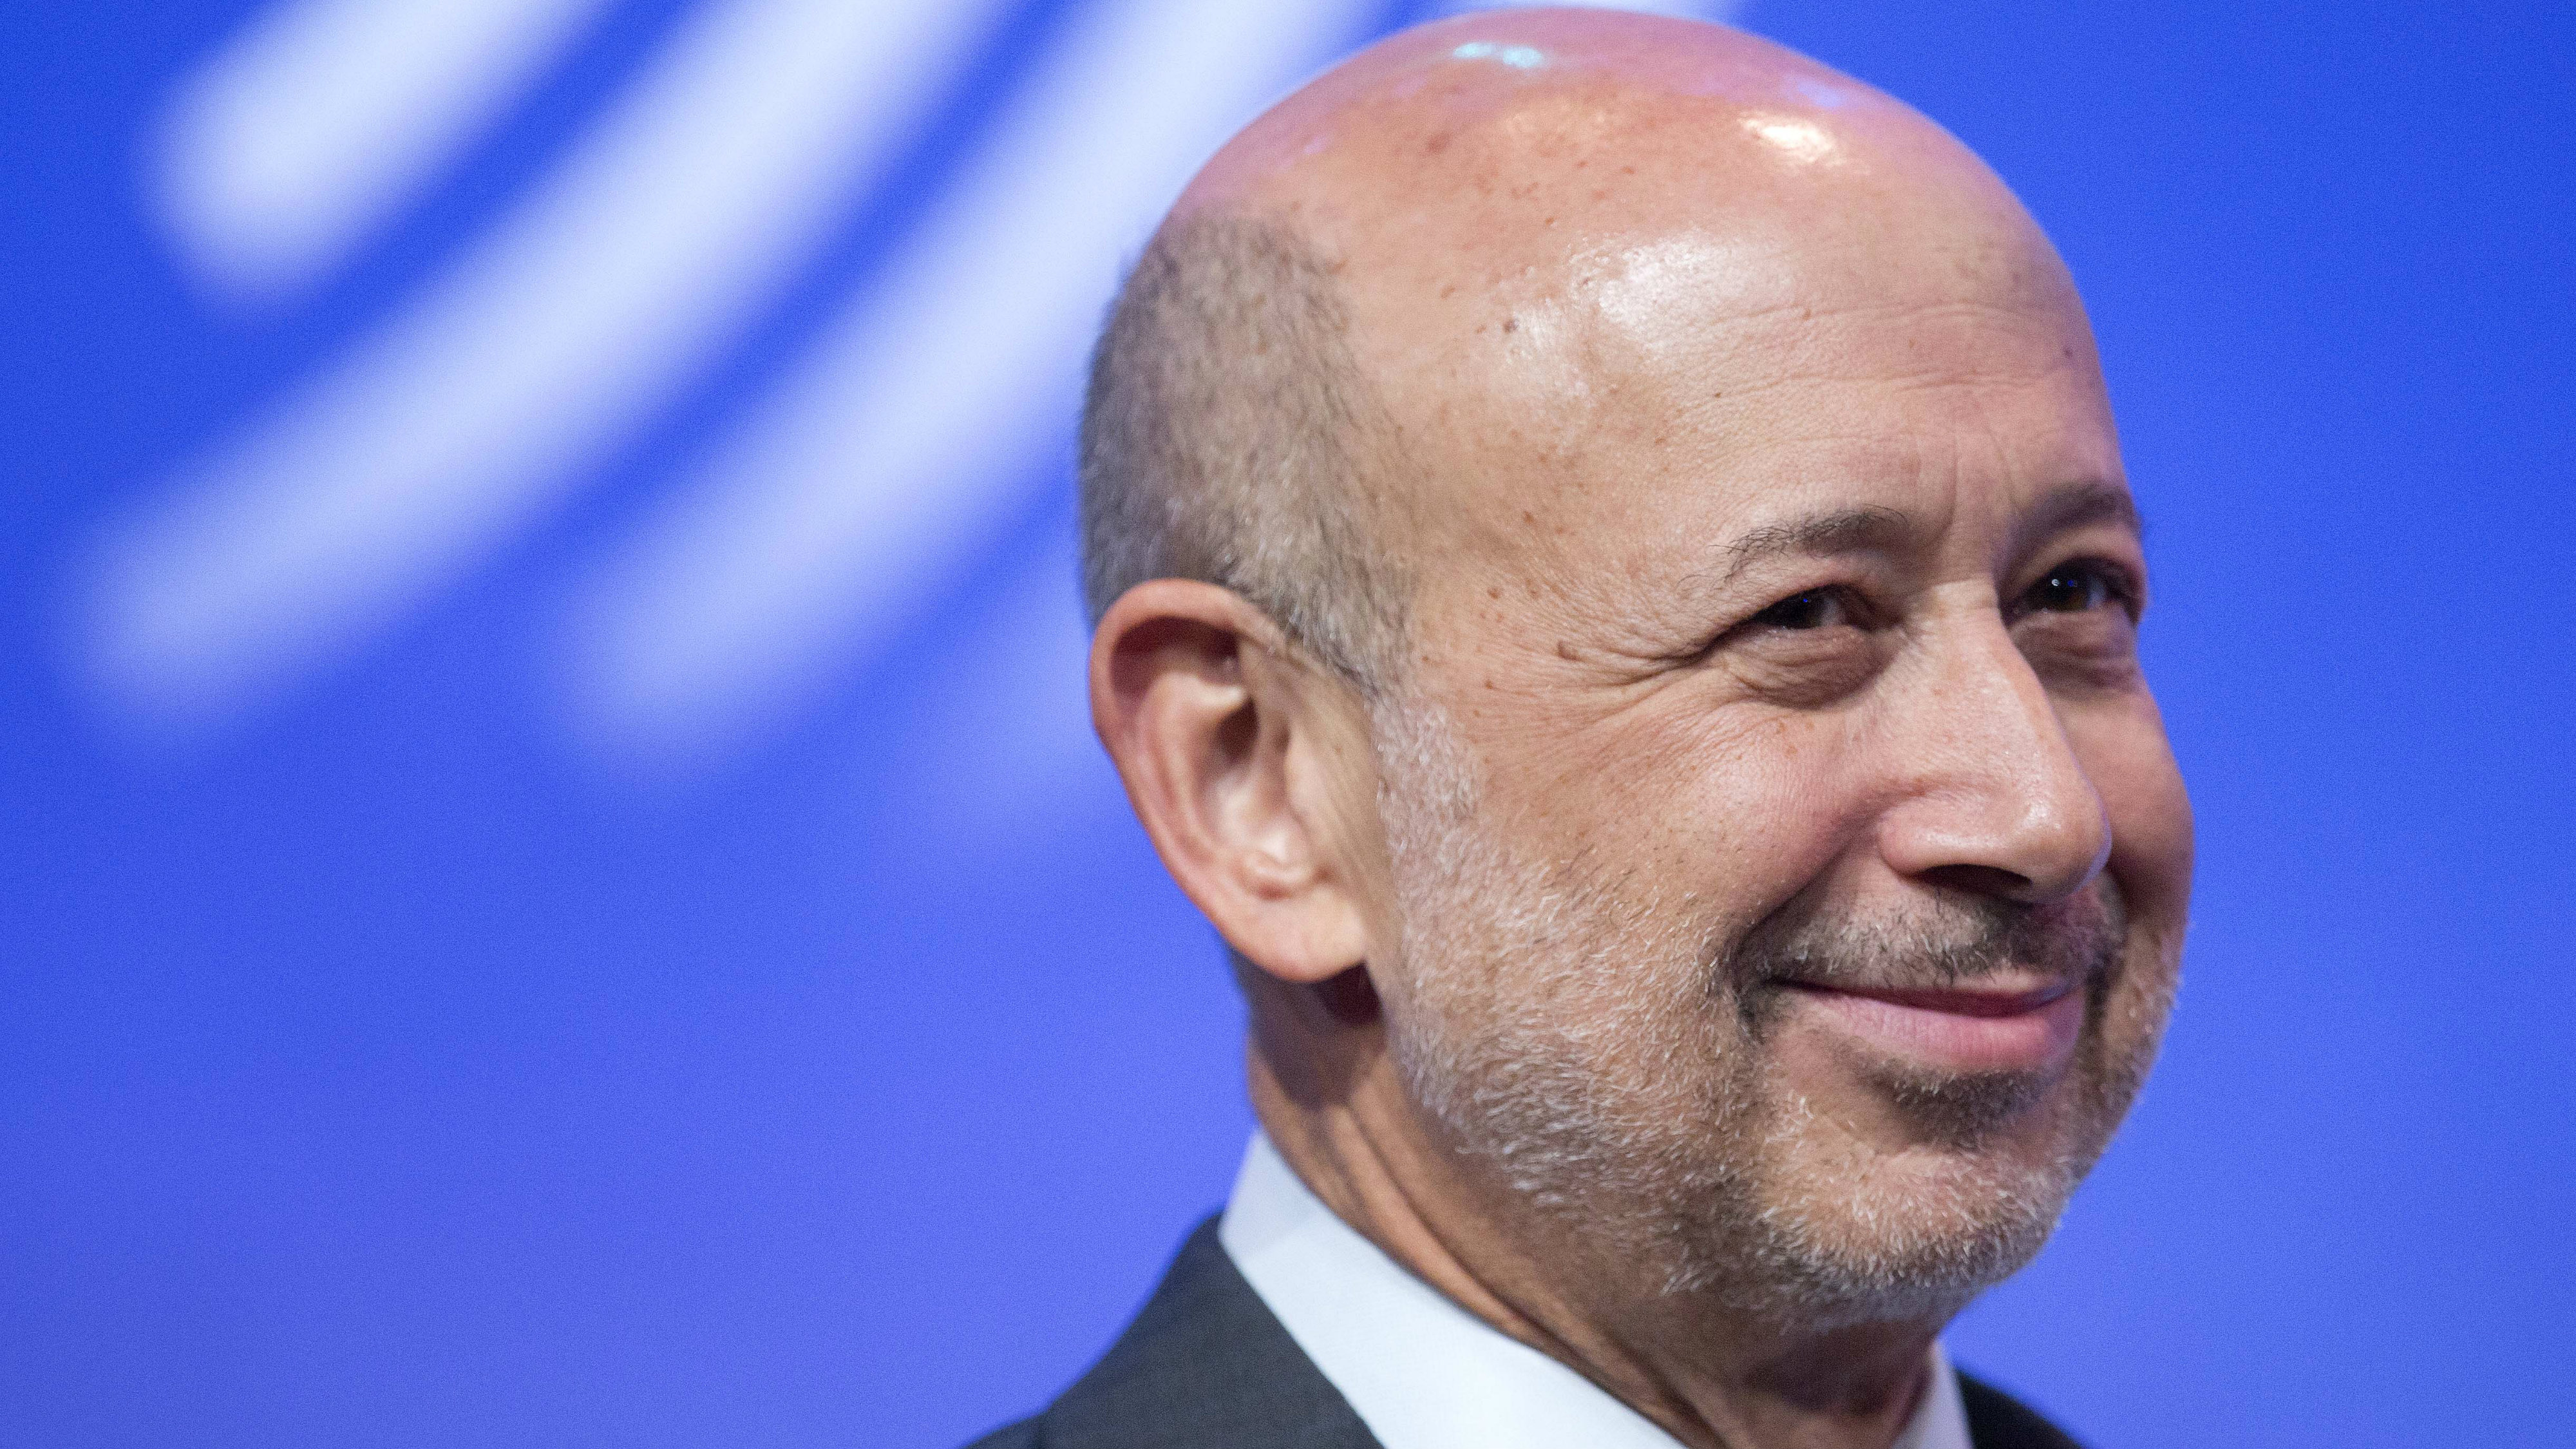 """Clinton Global Initiative Download Comp CLINTON GLOBAL INITIATIVE  Overview Download now   Lloyd Blankfein, Chairman and CEO of Goldman Sachs, speaks in a panel discussion, """"Equality for Girls and Women: 2034 Instead of 2134?"""" at the Clinton Global Initiative, Wednesday, Sept. 24, 2014 in New York. (AP Photo/Mark Lennihan)"""